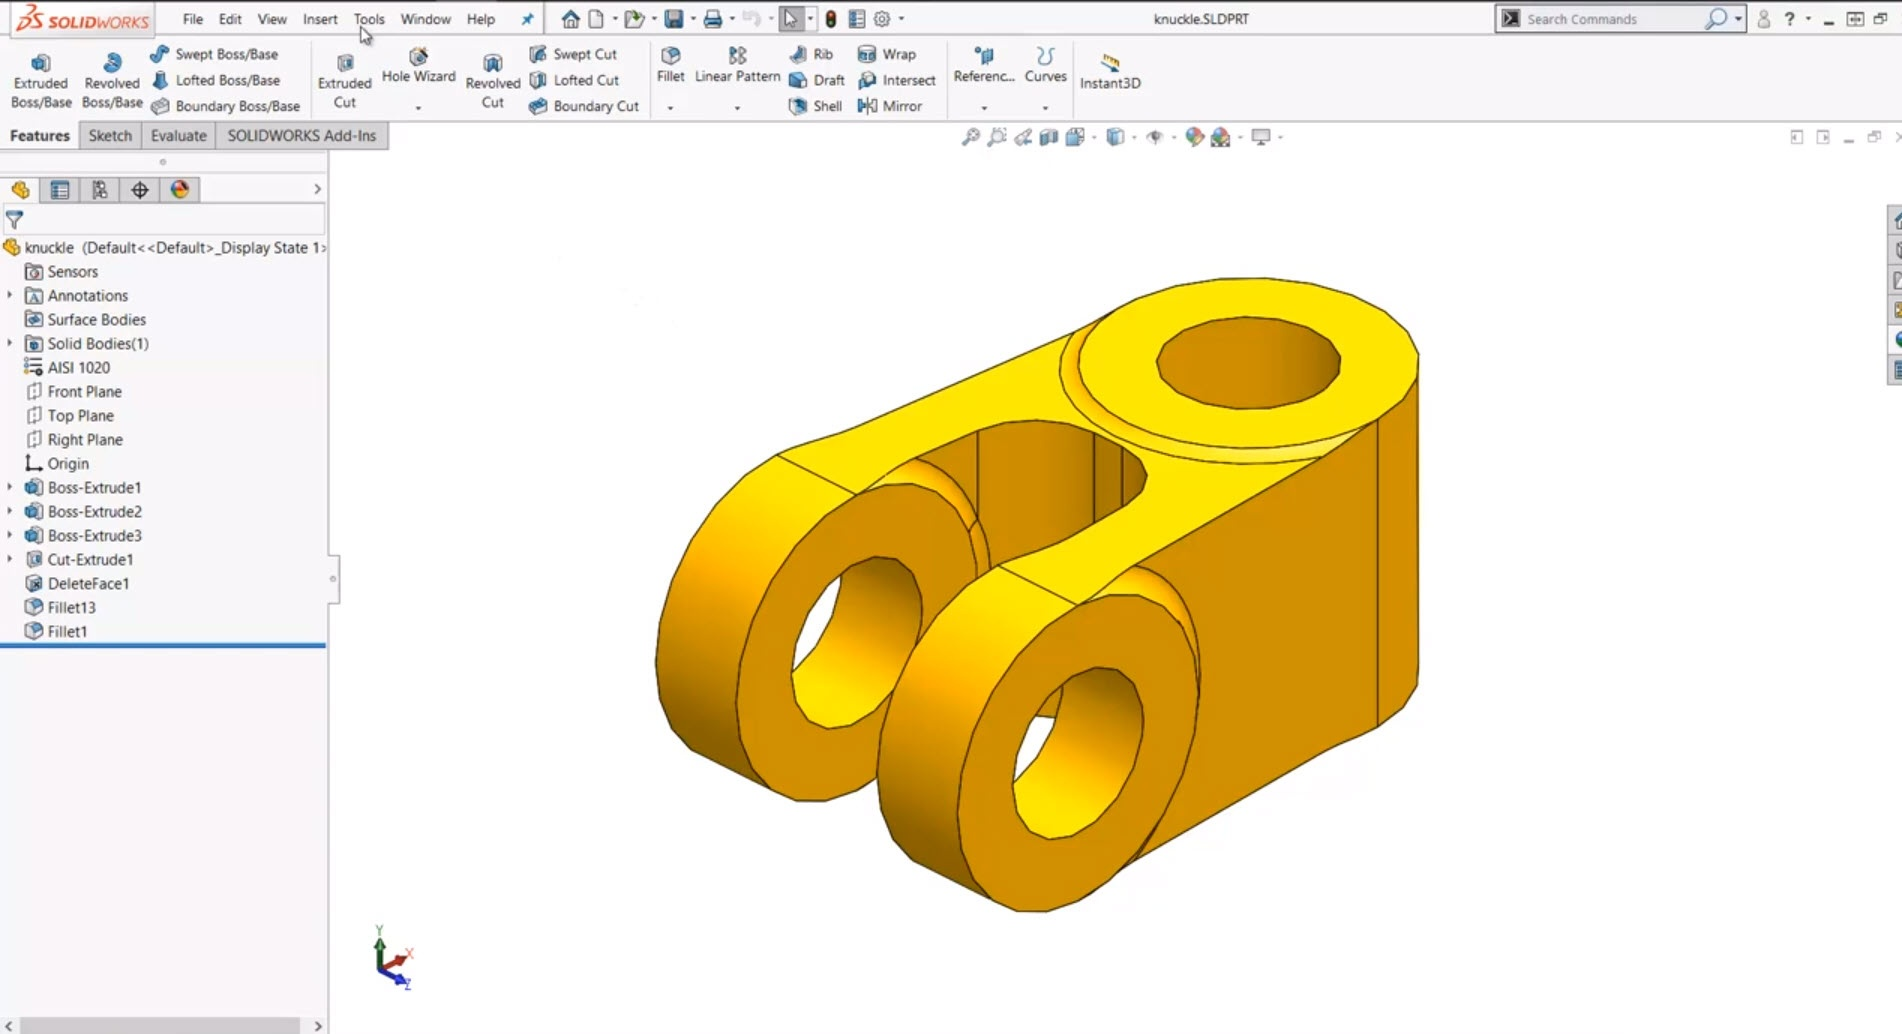 Getting Started with SOLIDWORKS Simulation - Introduction to Finite Element Analysis